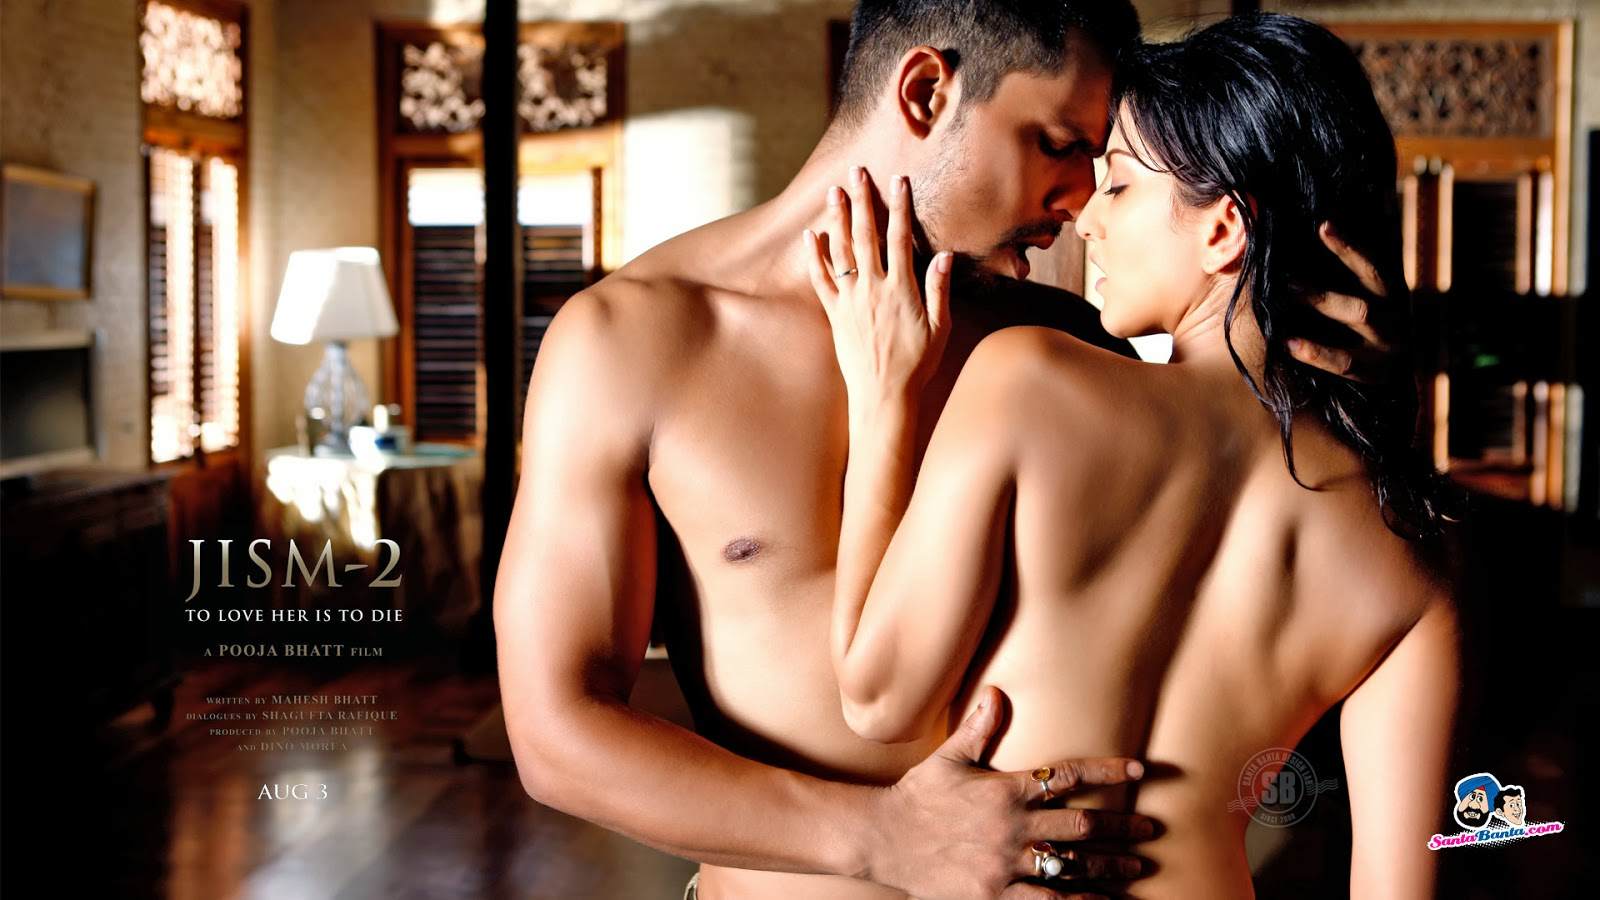 You Sunny leone hot nude answer matchless